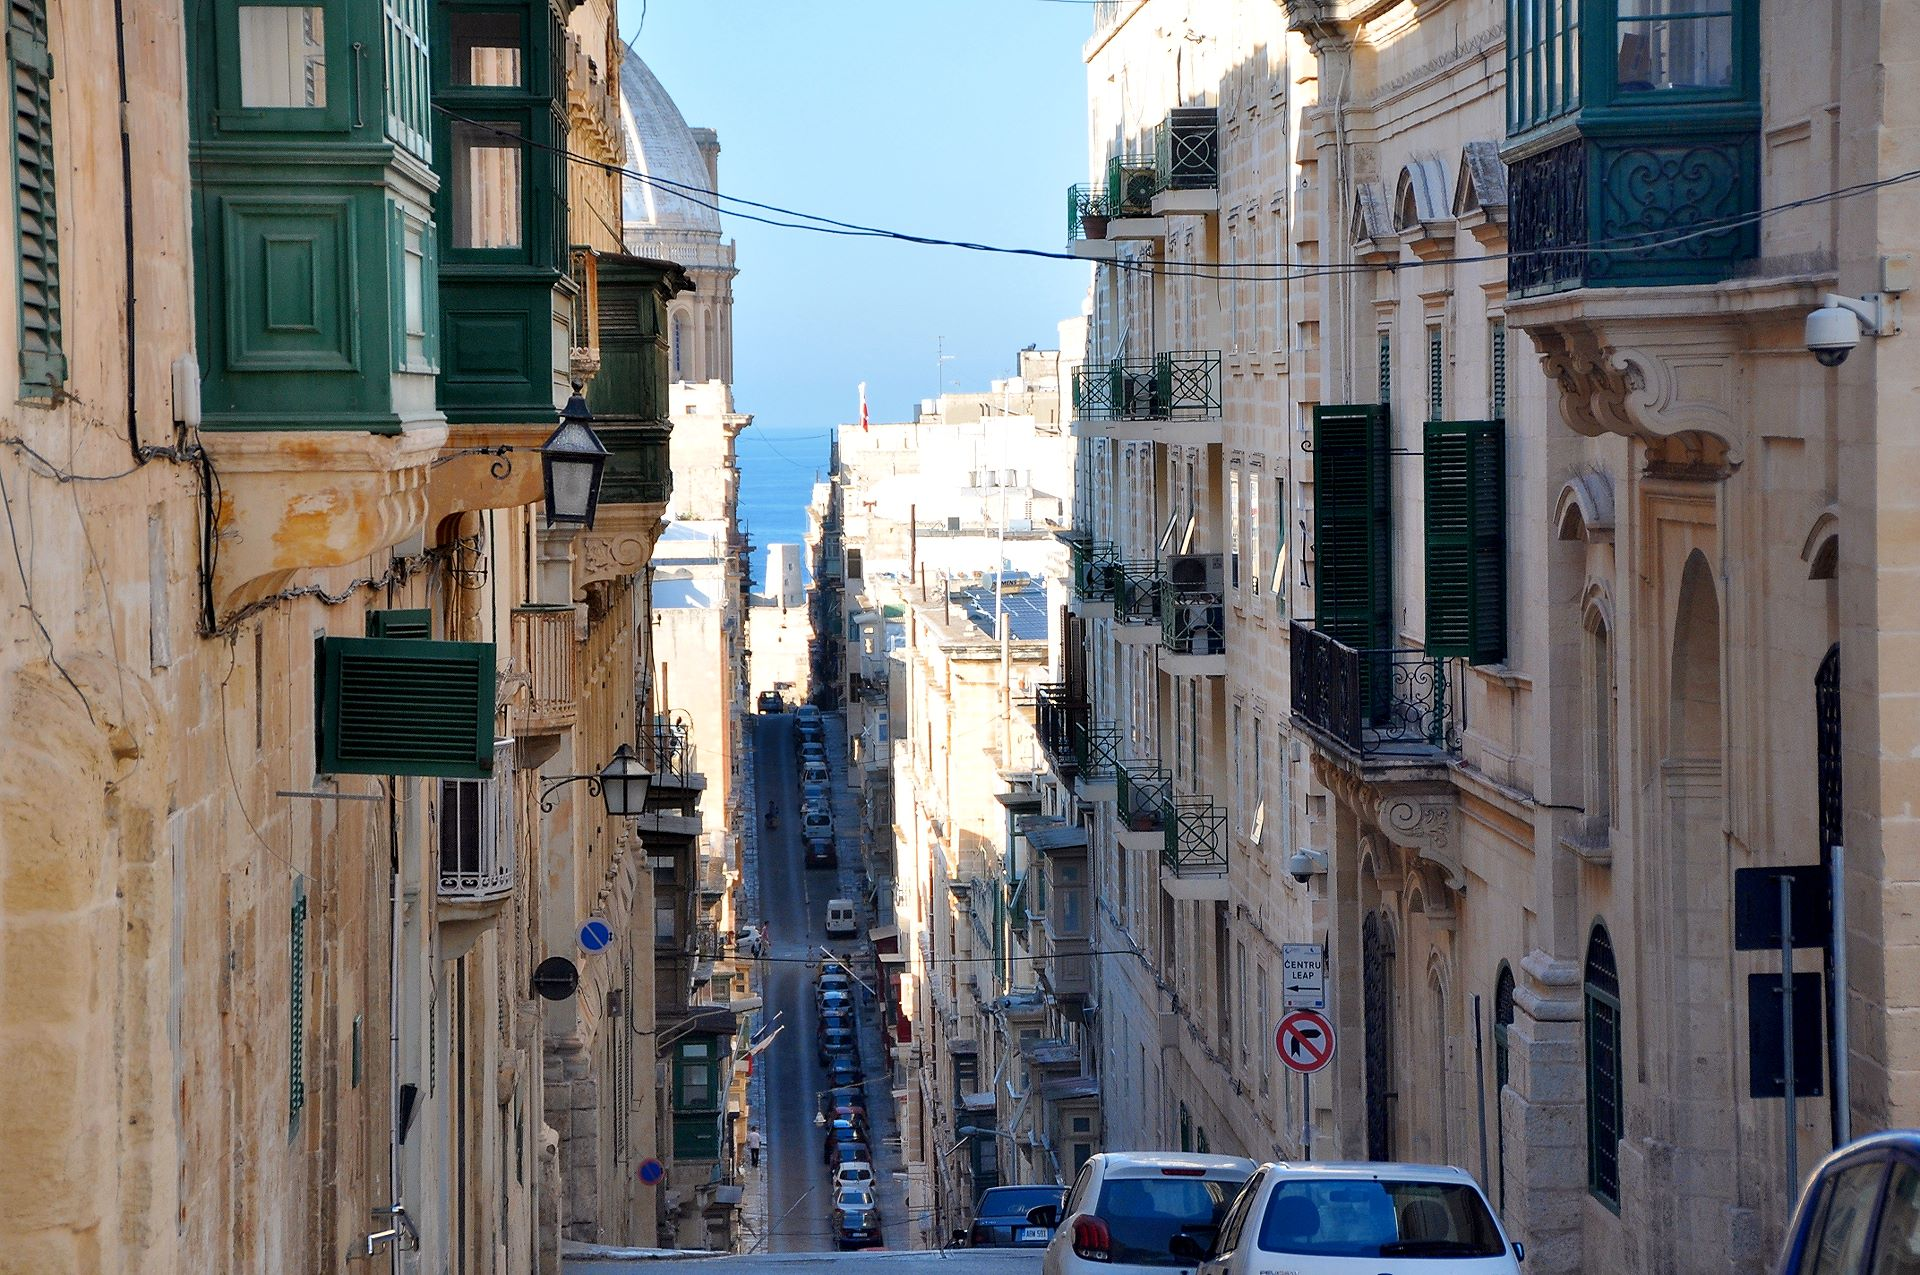 Gassen in Valletta